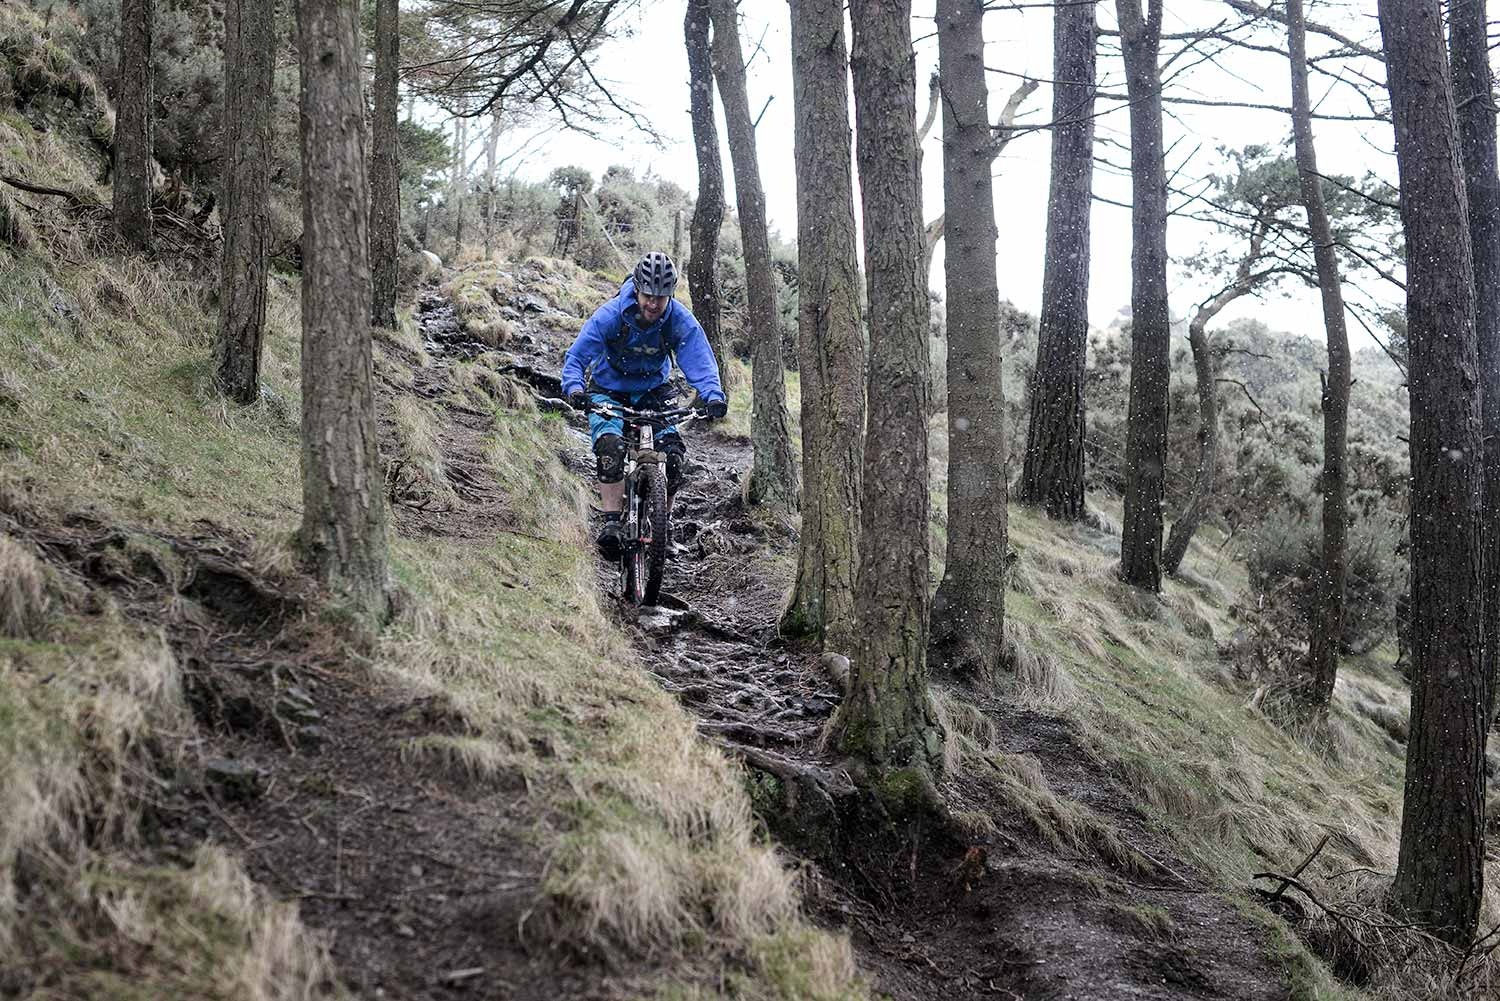 Mountain biker riding steep rooted trail through forest in bad weather